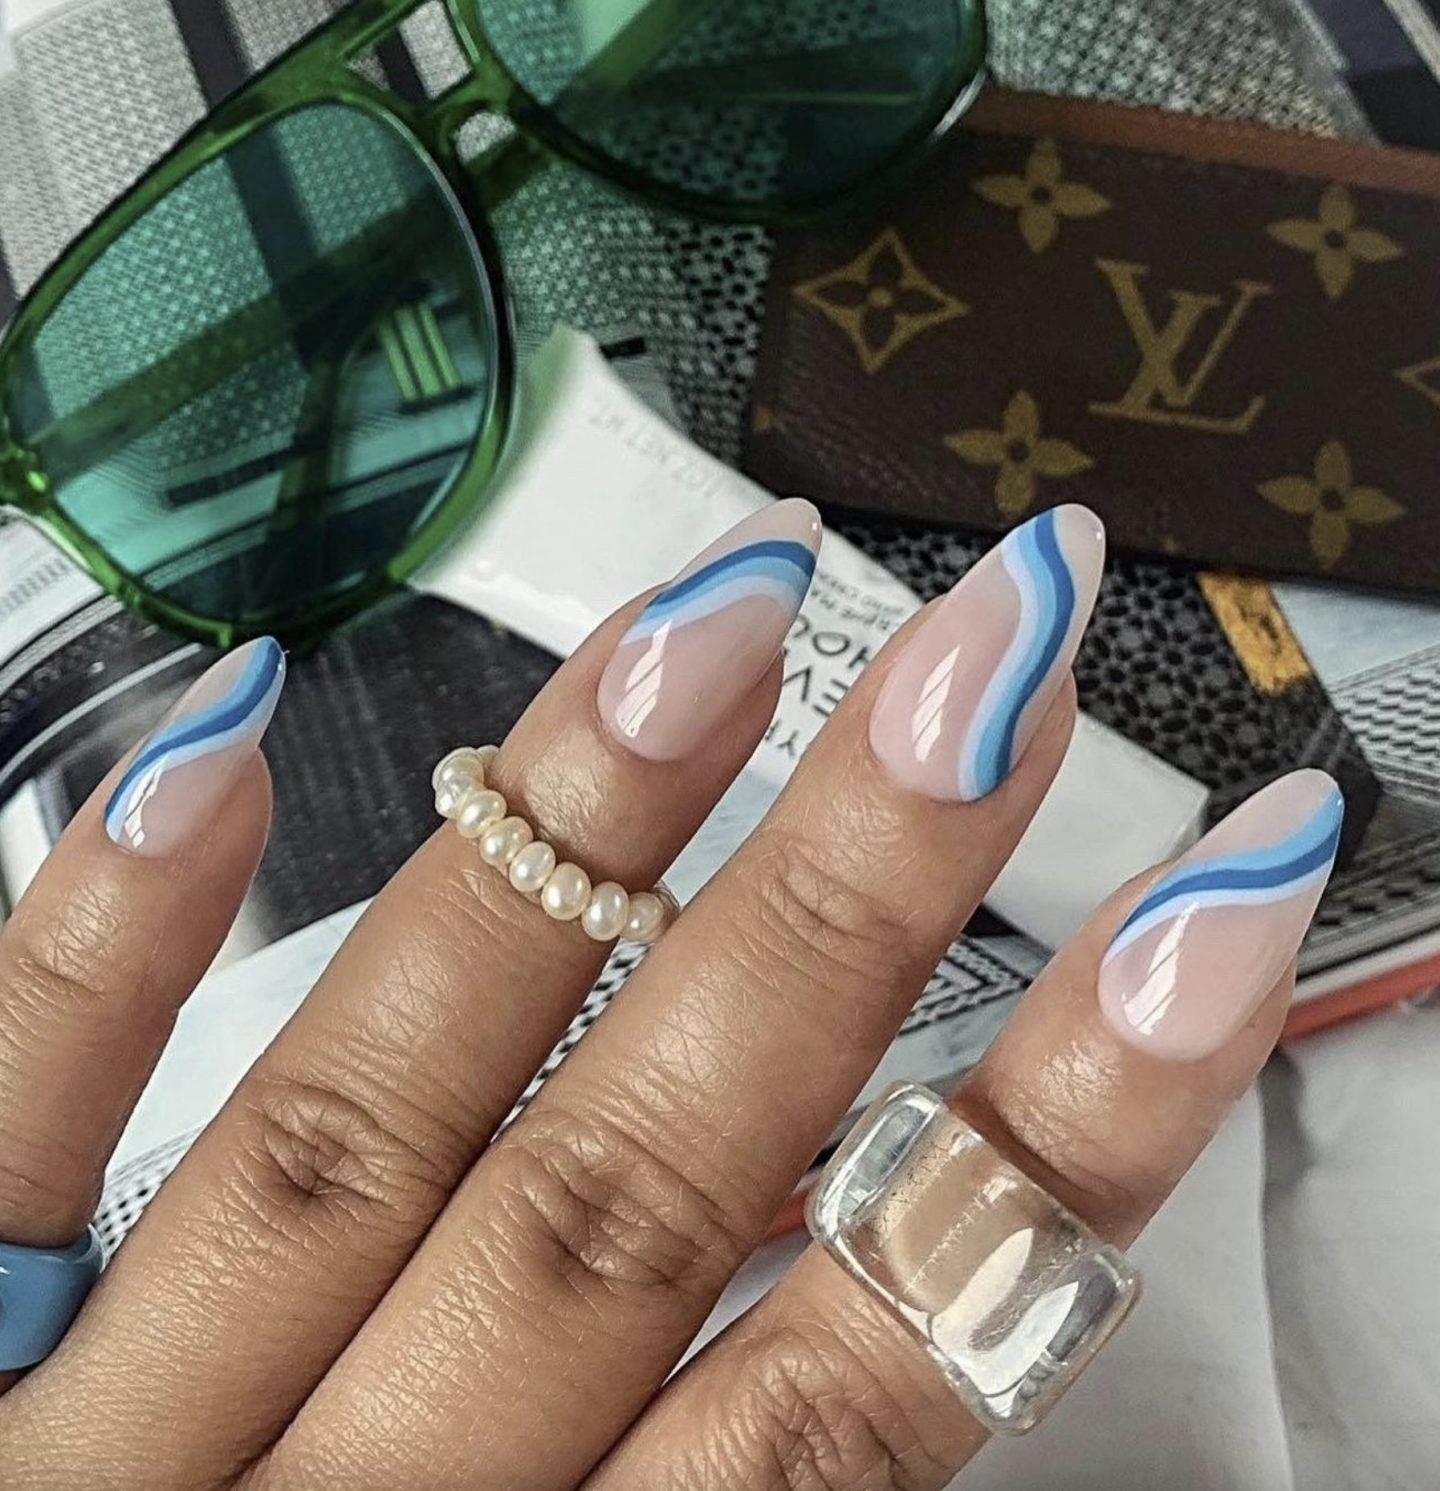 Neutral abstract nails with blue swirls and lines